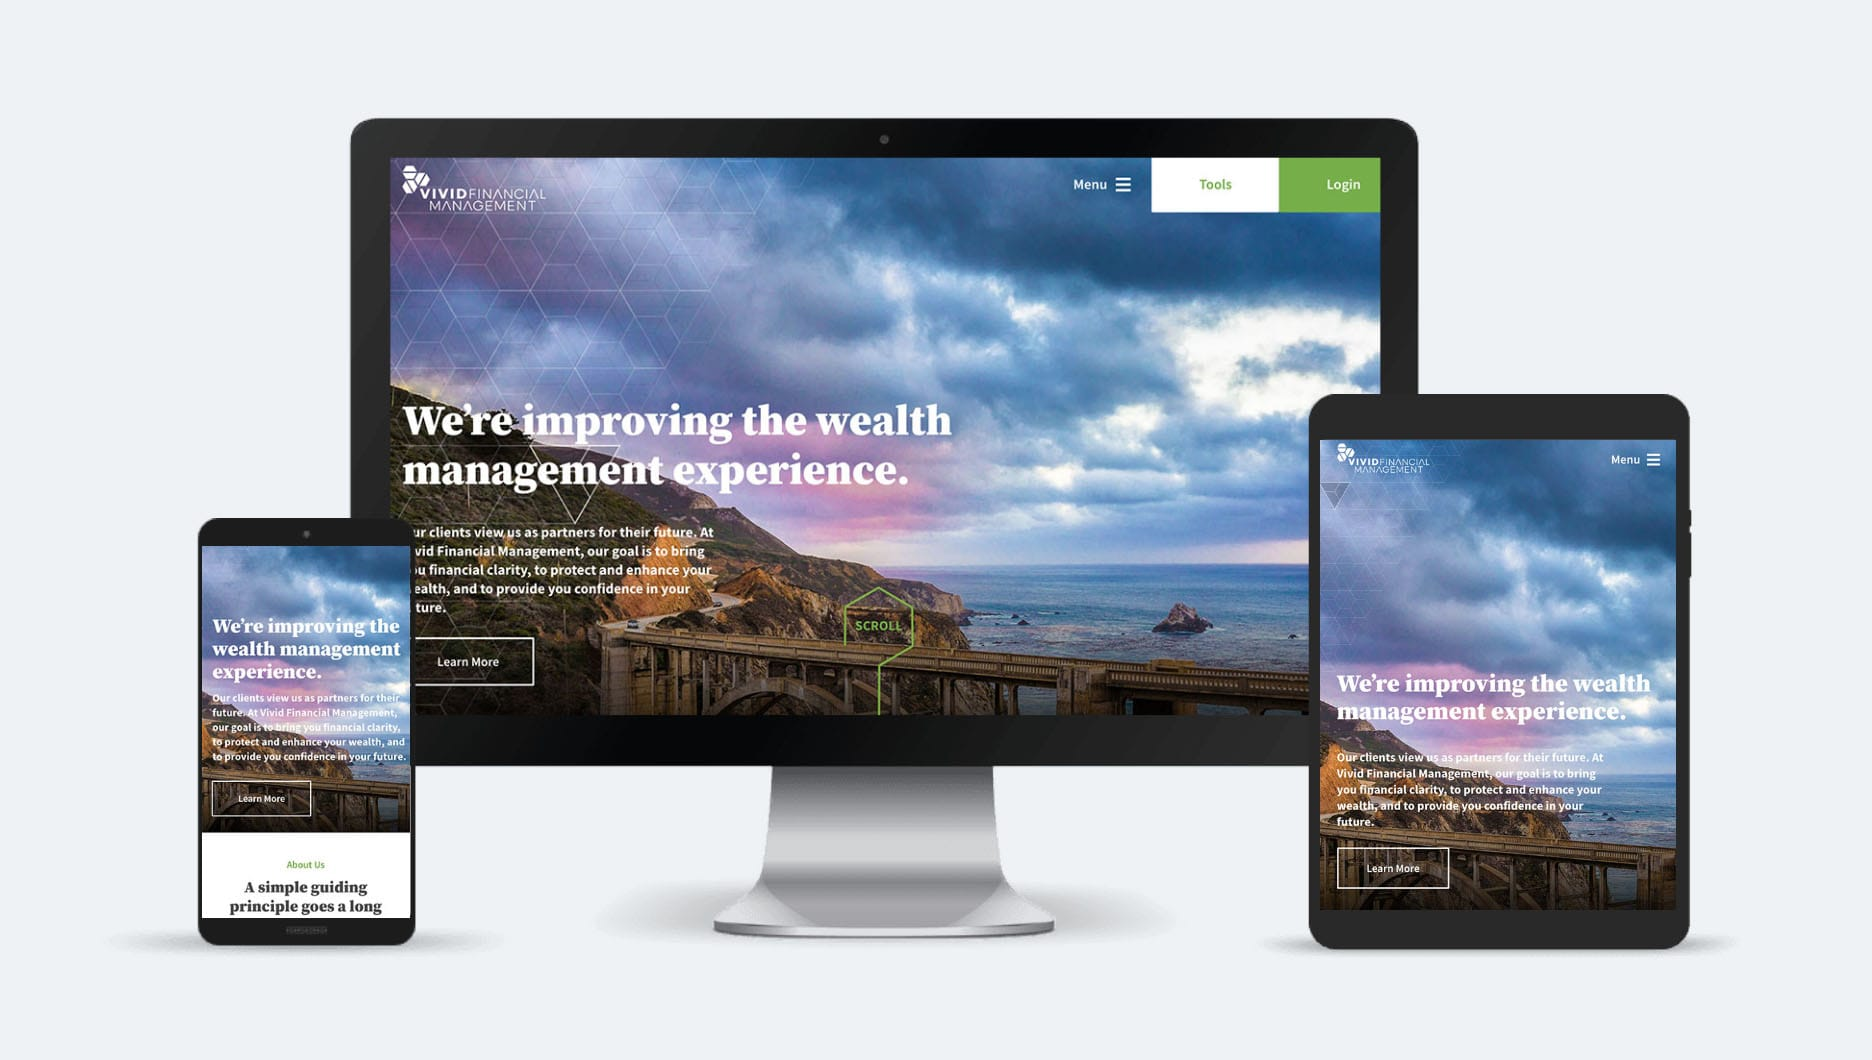 Vivid Financial Management website and logo redesign and redevelopment by Motion Tactic - Unforgettable Branding